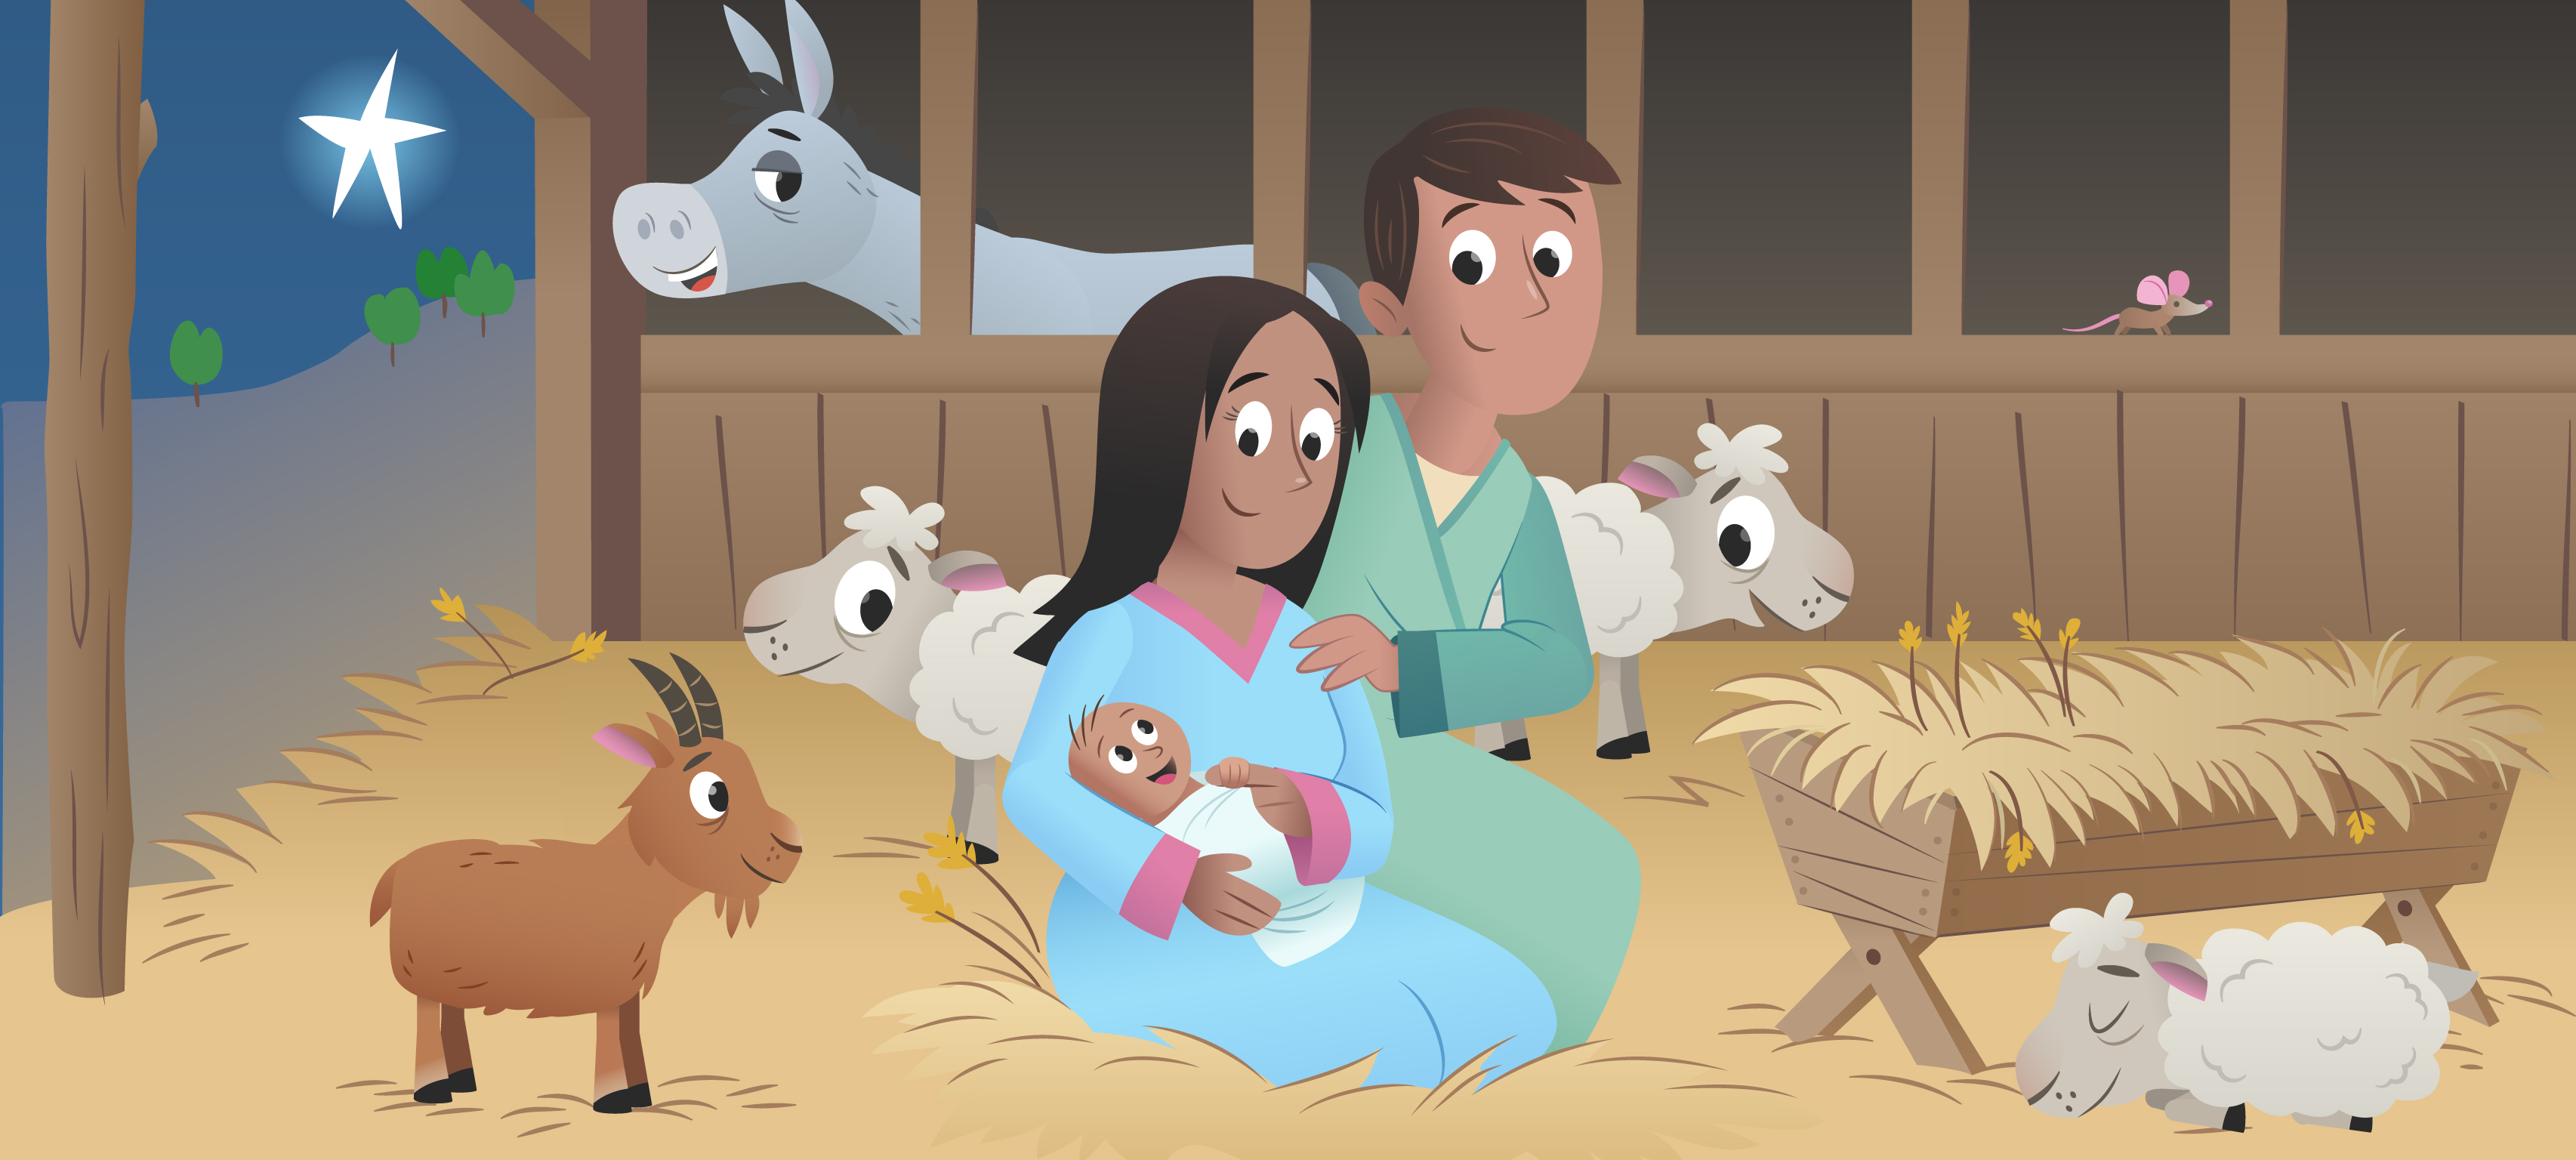 Uncategorized Christmas Story For Children celebrate jesus birth with the christmas story plan youversion first gift from bible app for kids